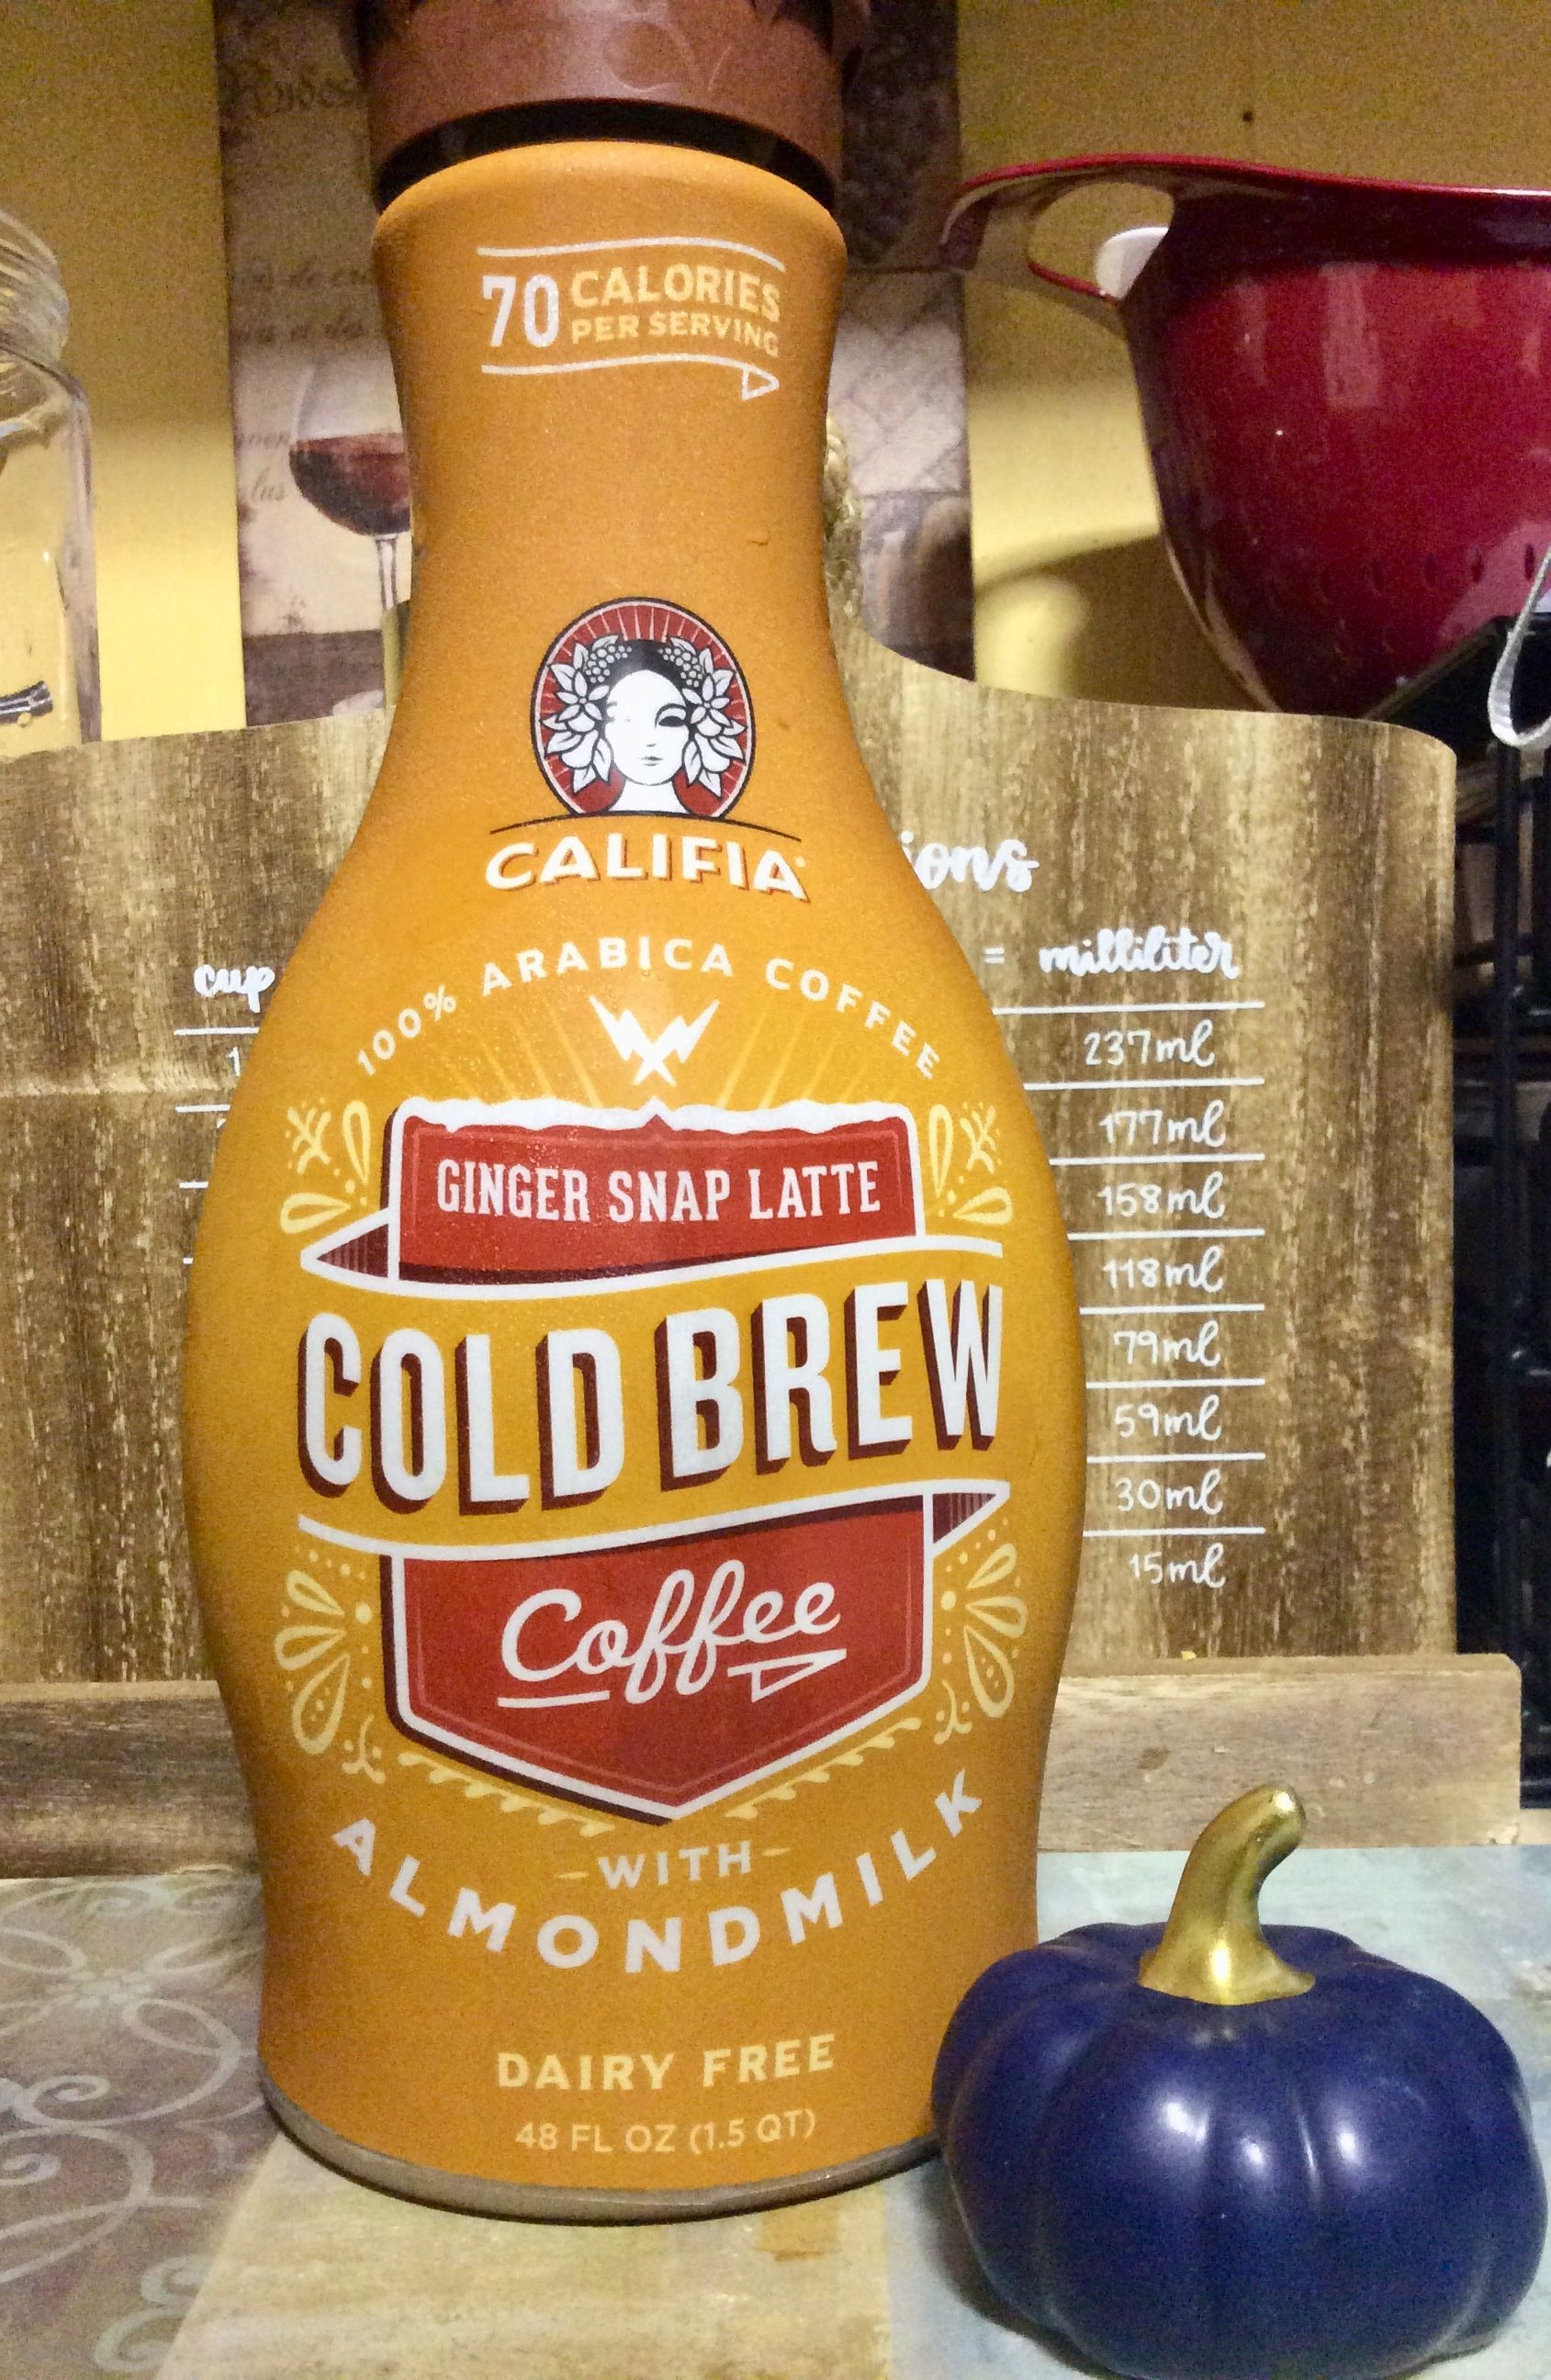 Califia farms limited edition gingersnap latte cold brew